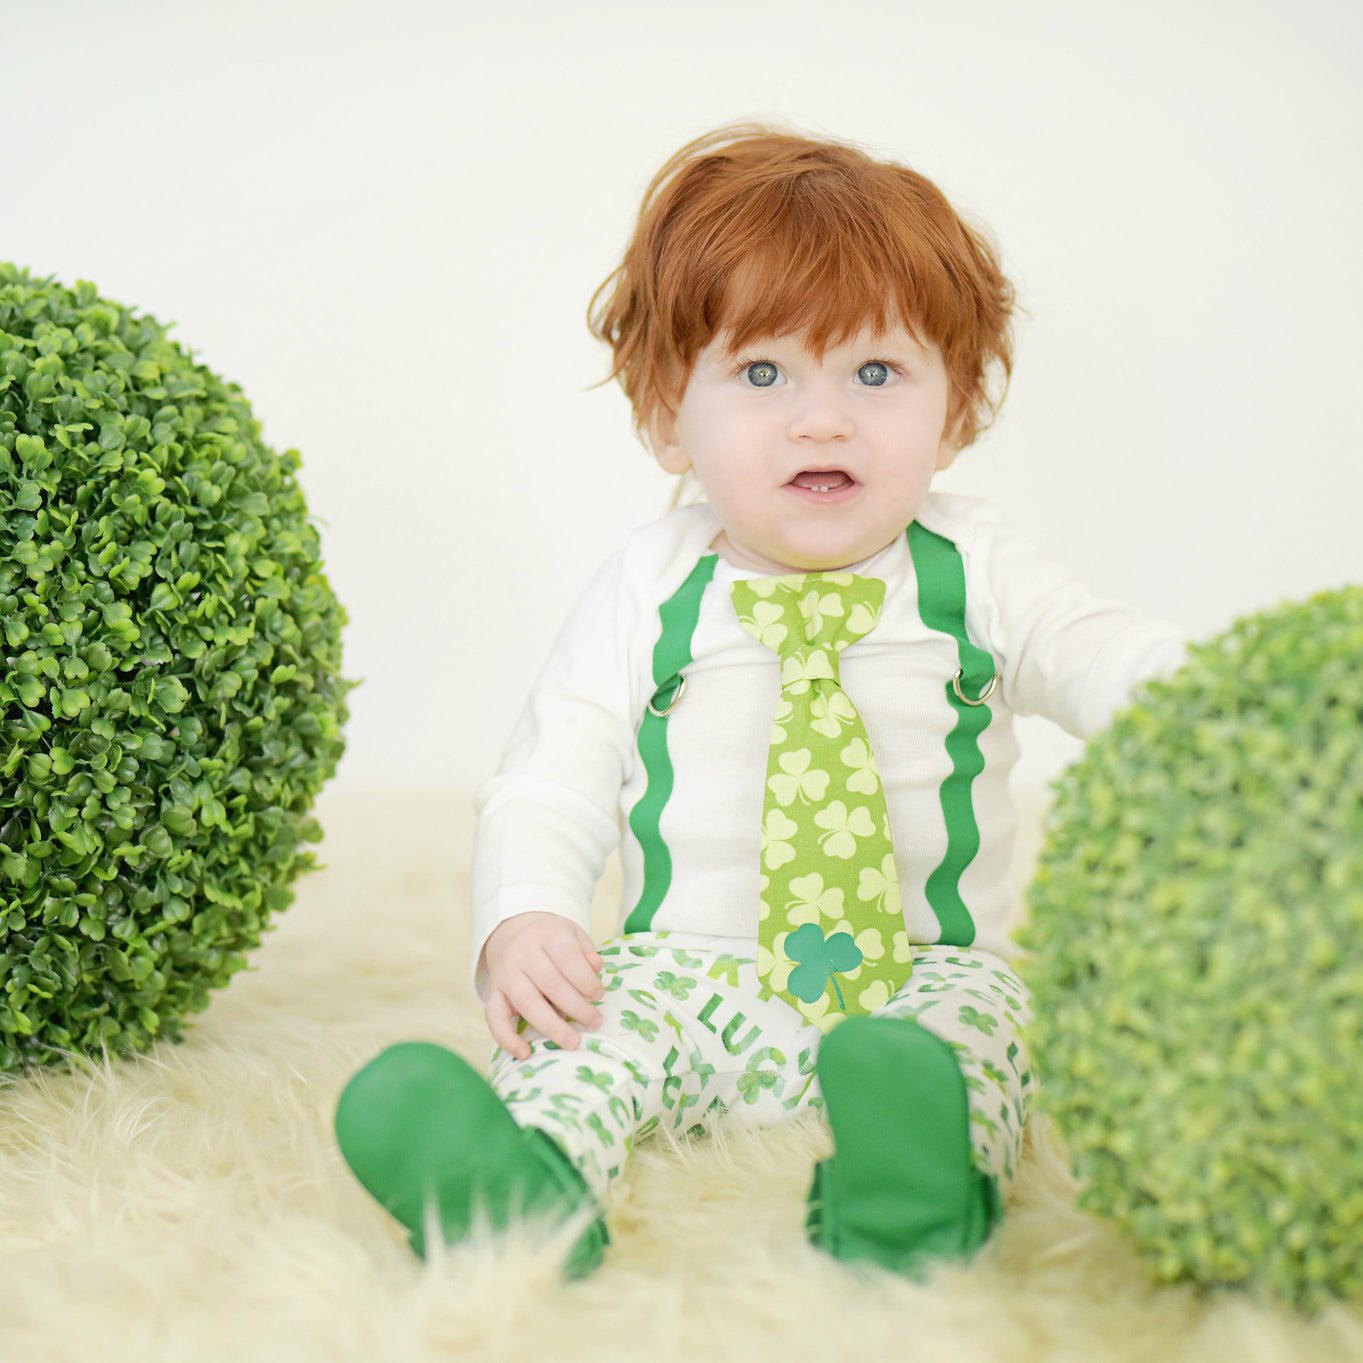 7 Lucky Baby Boy St Patricks Day Outfit Ideas For Newborns Through T